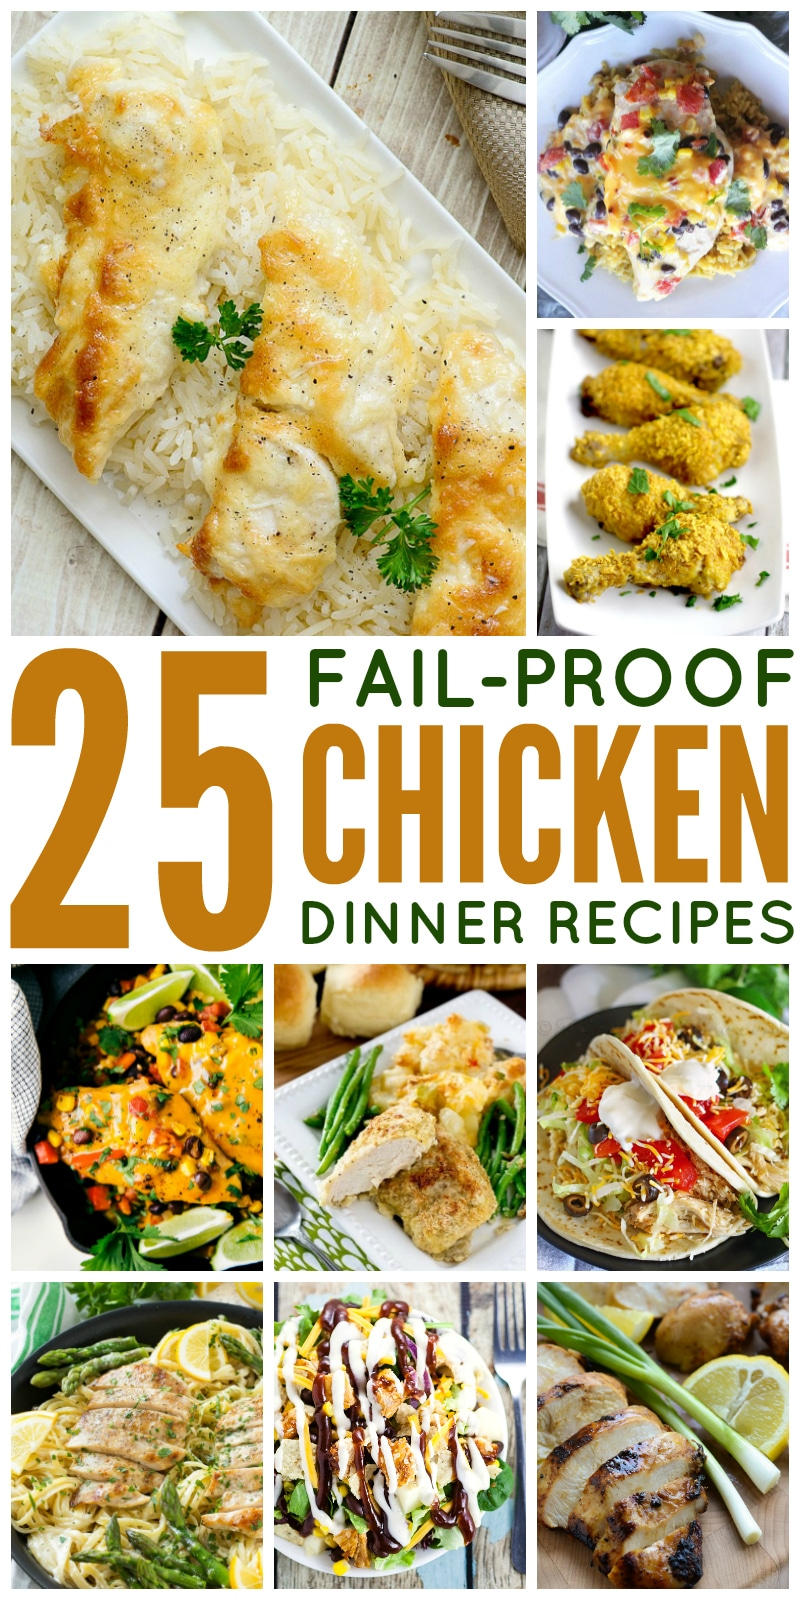 25 Fail Proof Chicken Dinner Recipes perfect for your family